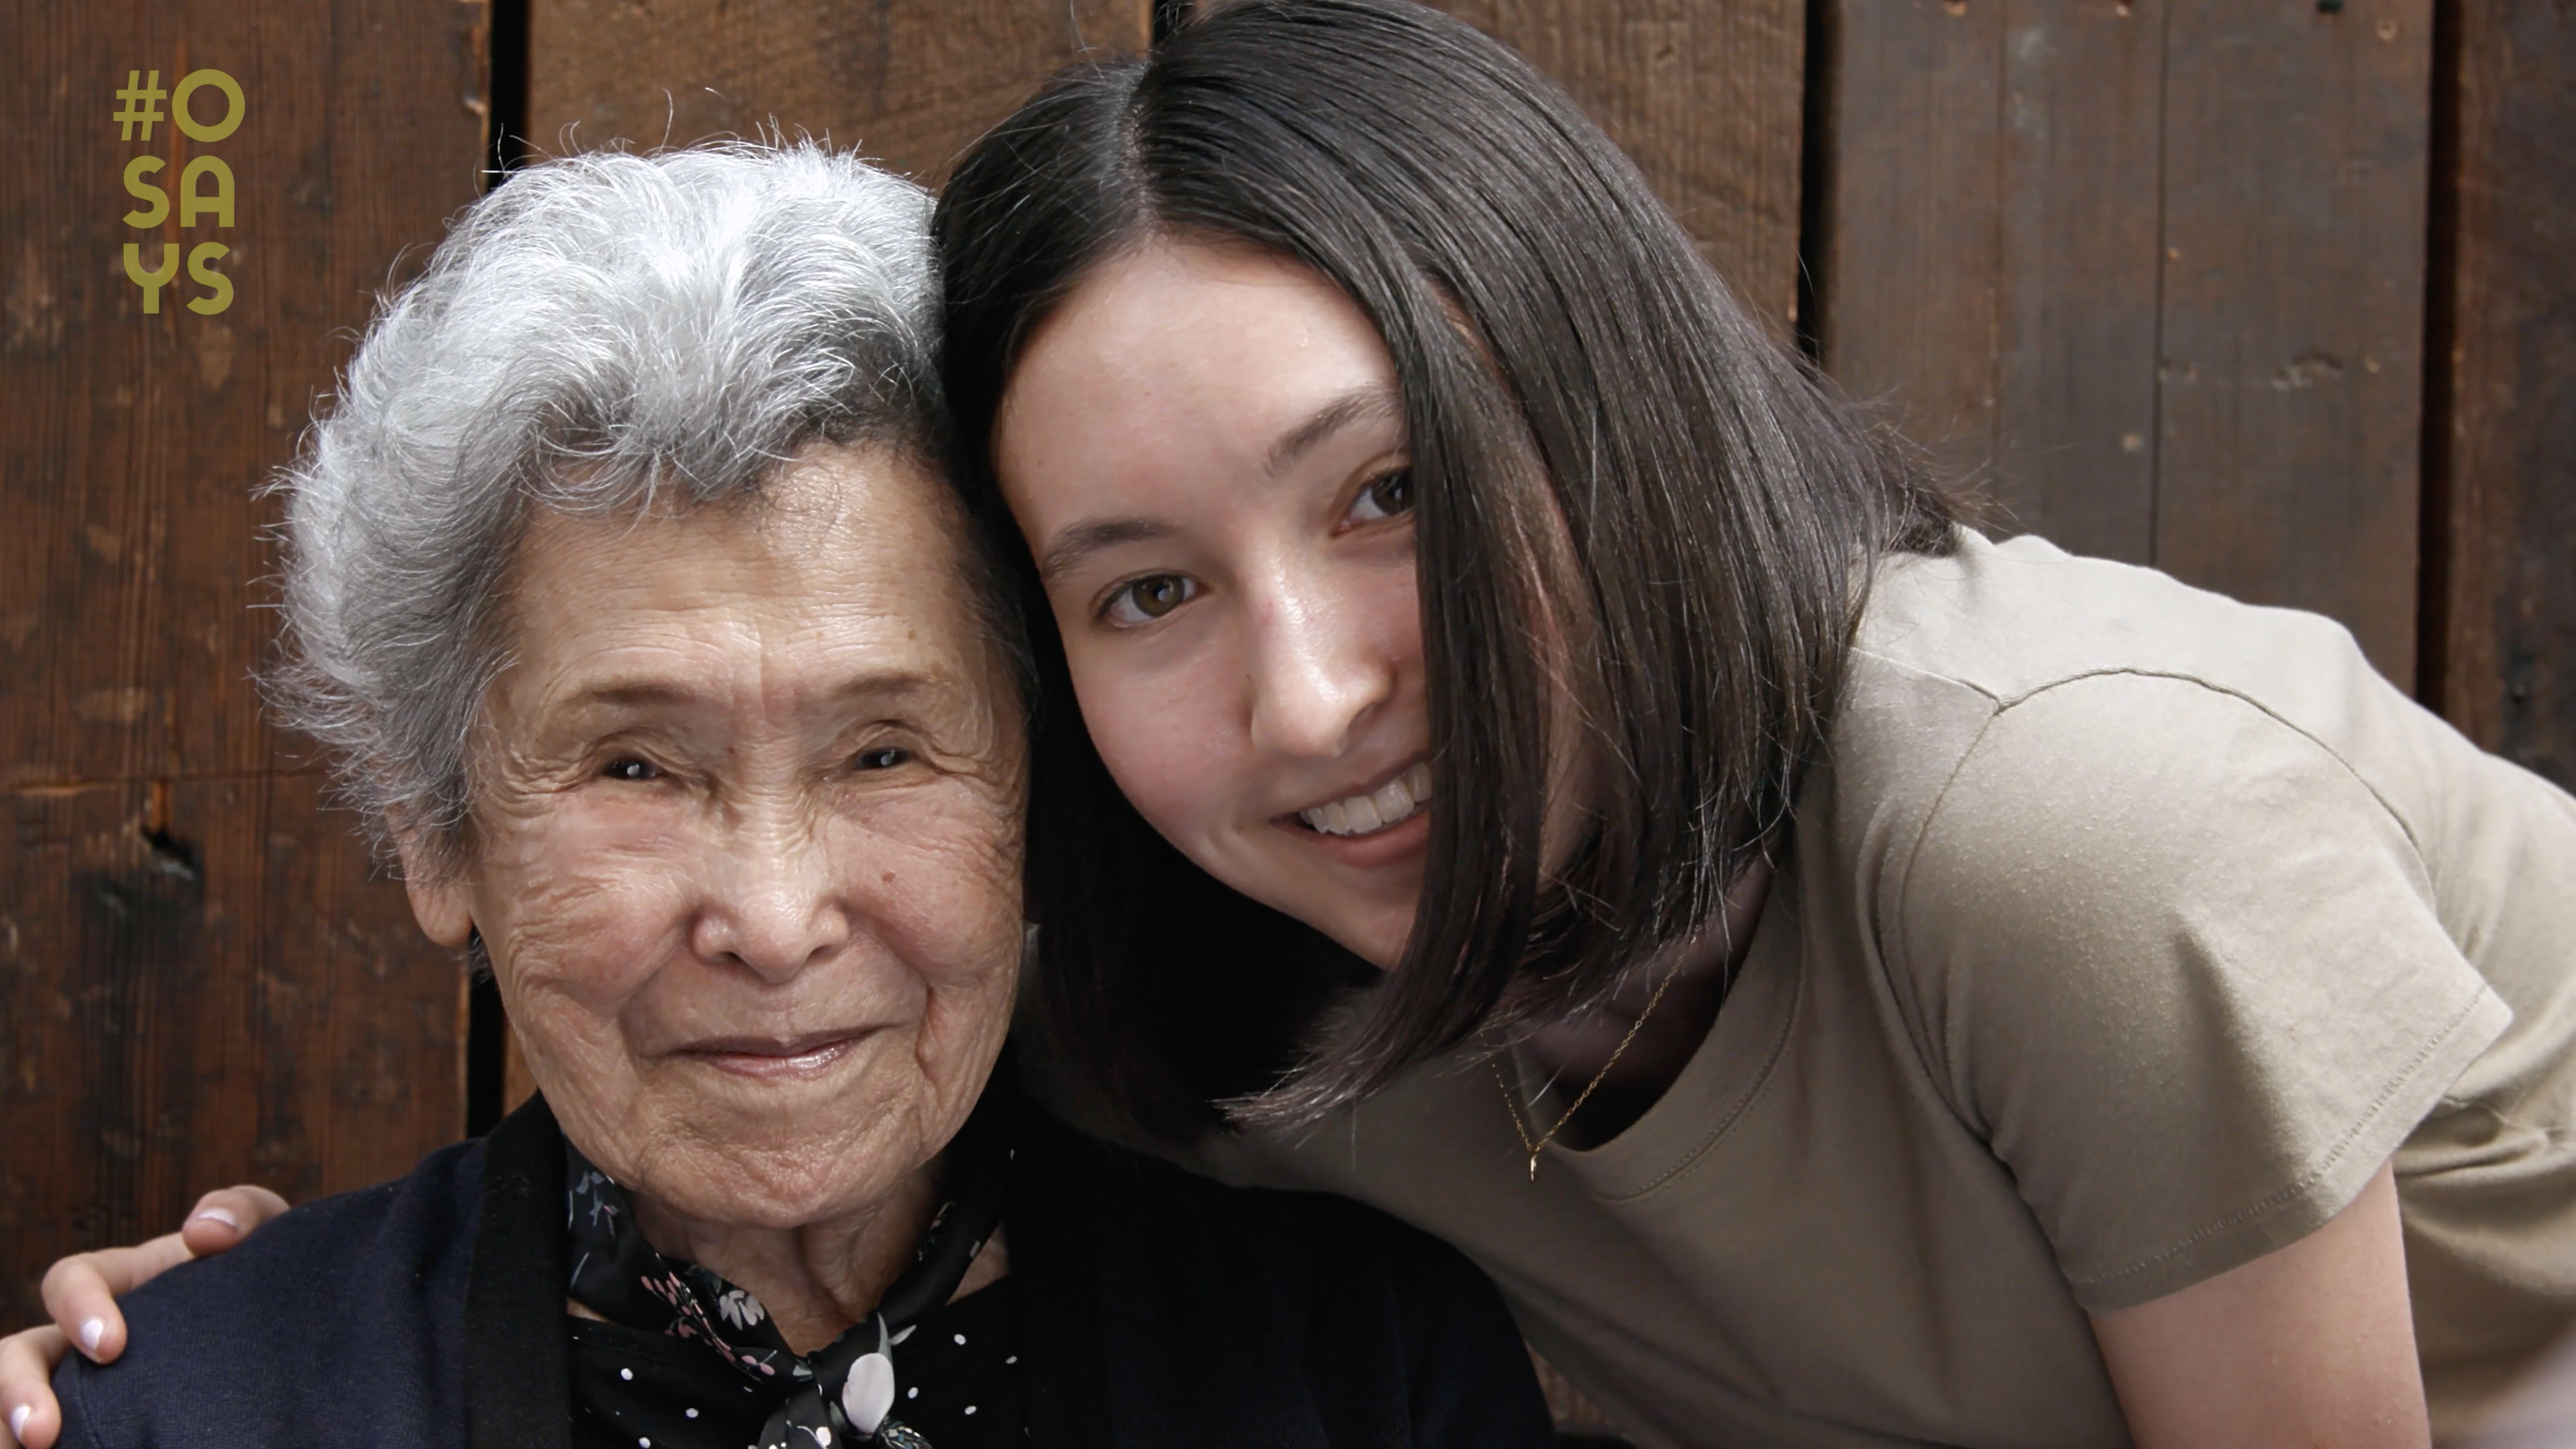 An older woman and younger woman embracing and smiling